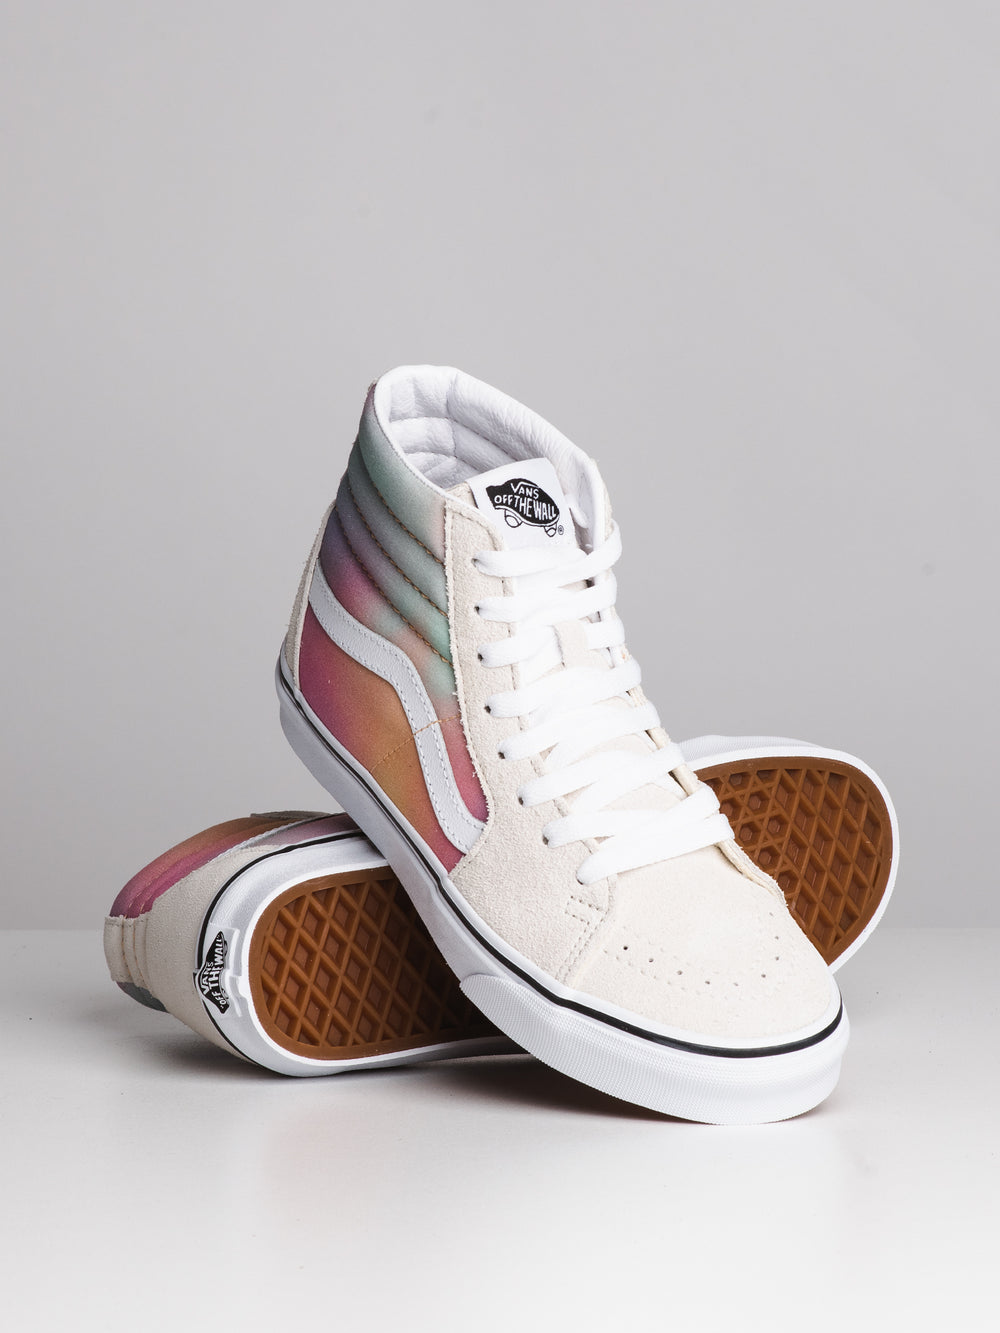 WOMENS SK8 HI - AURA SHIFT/WHITE